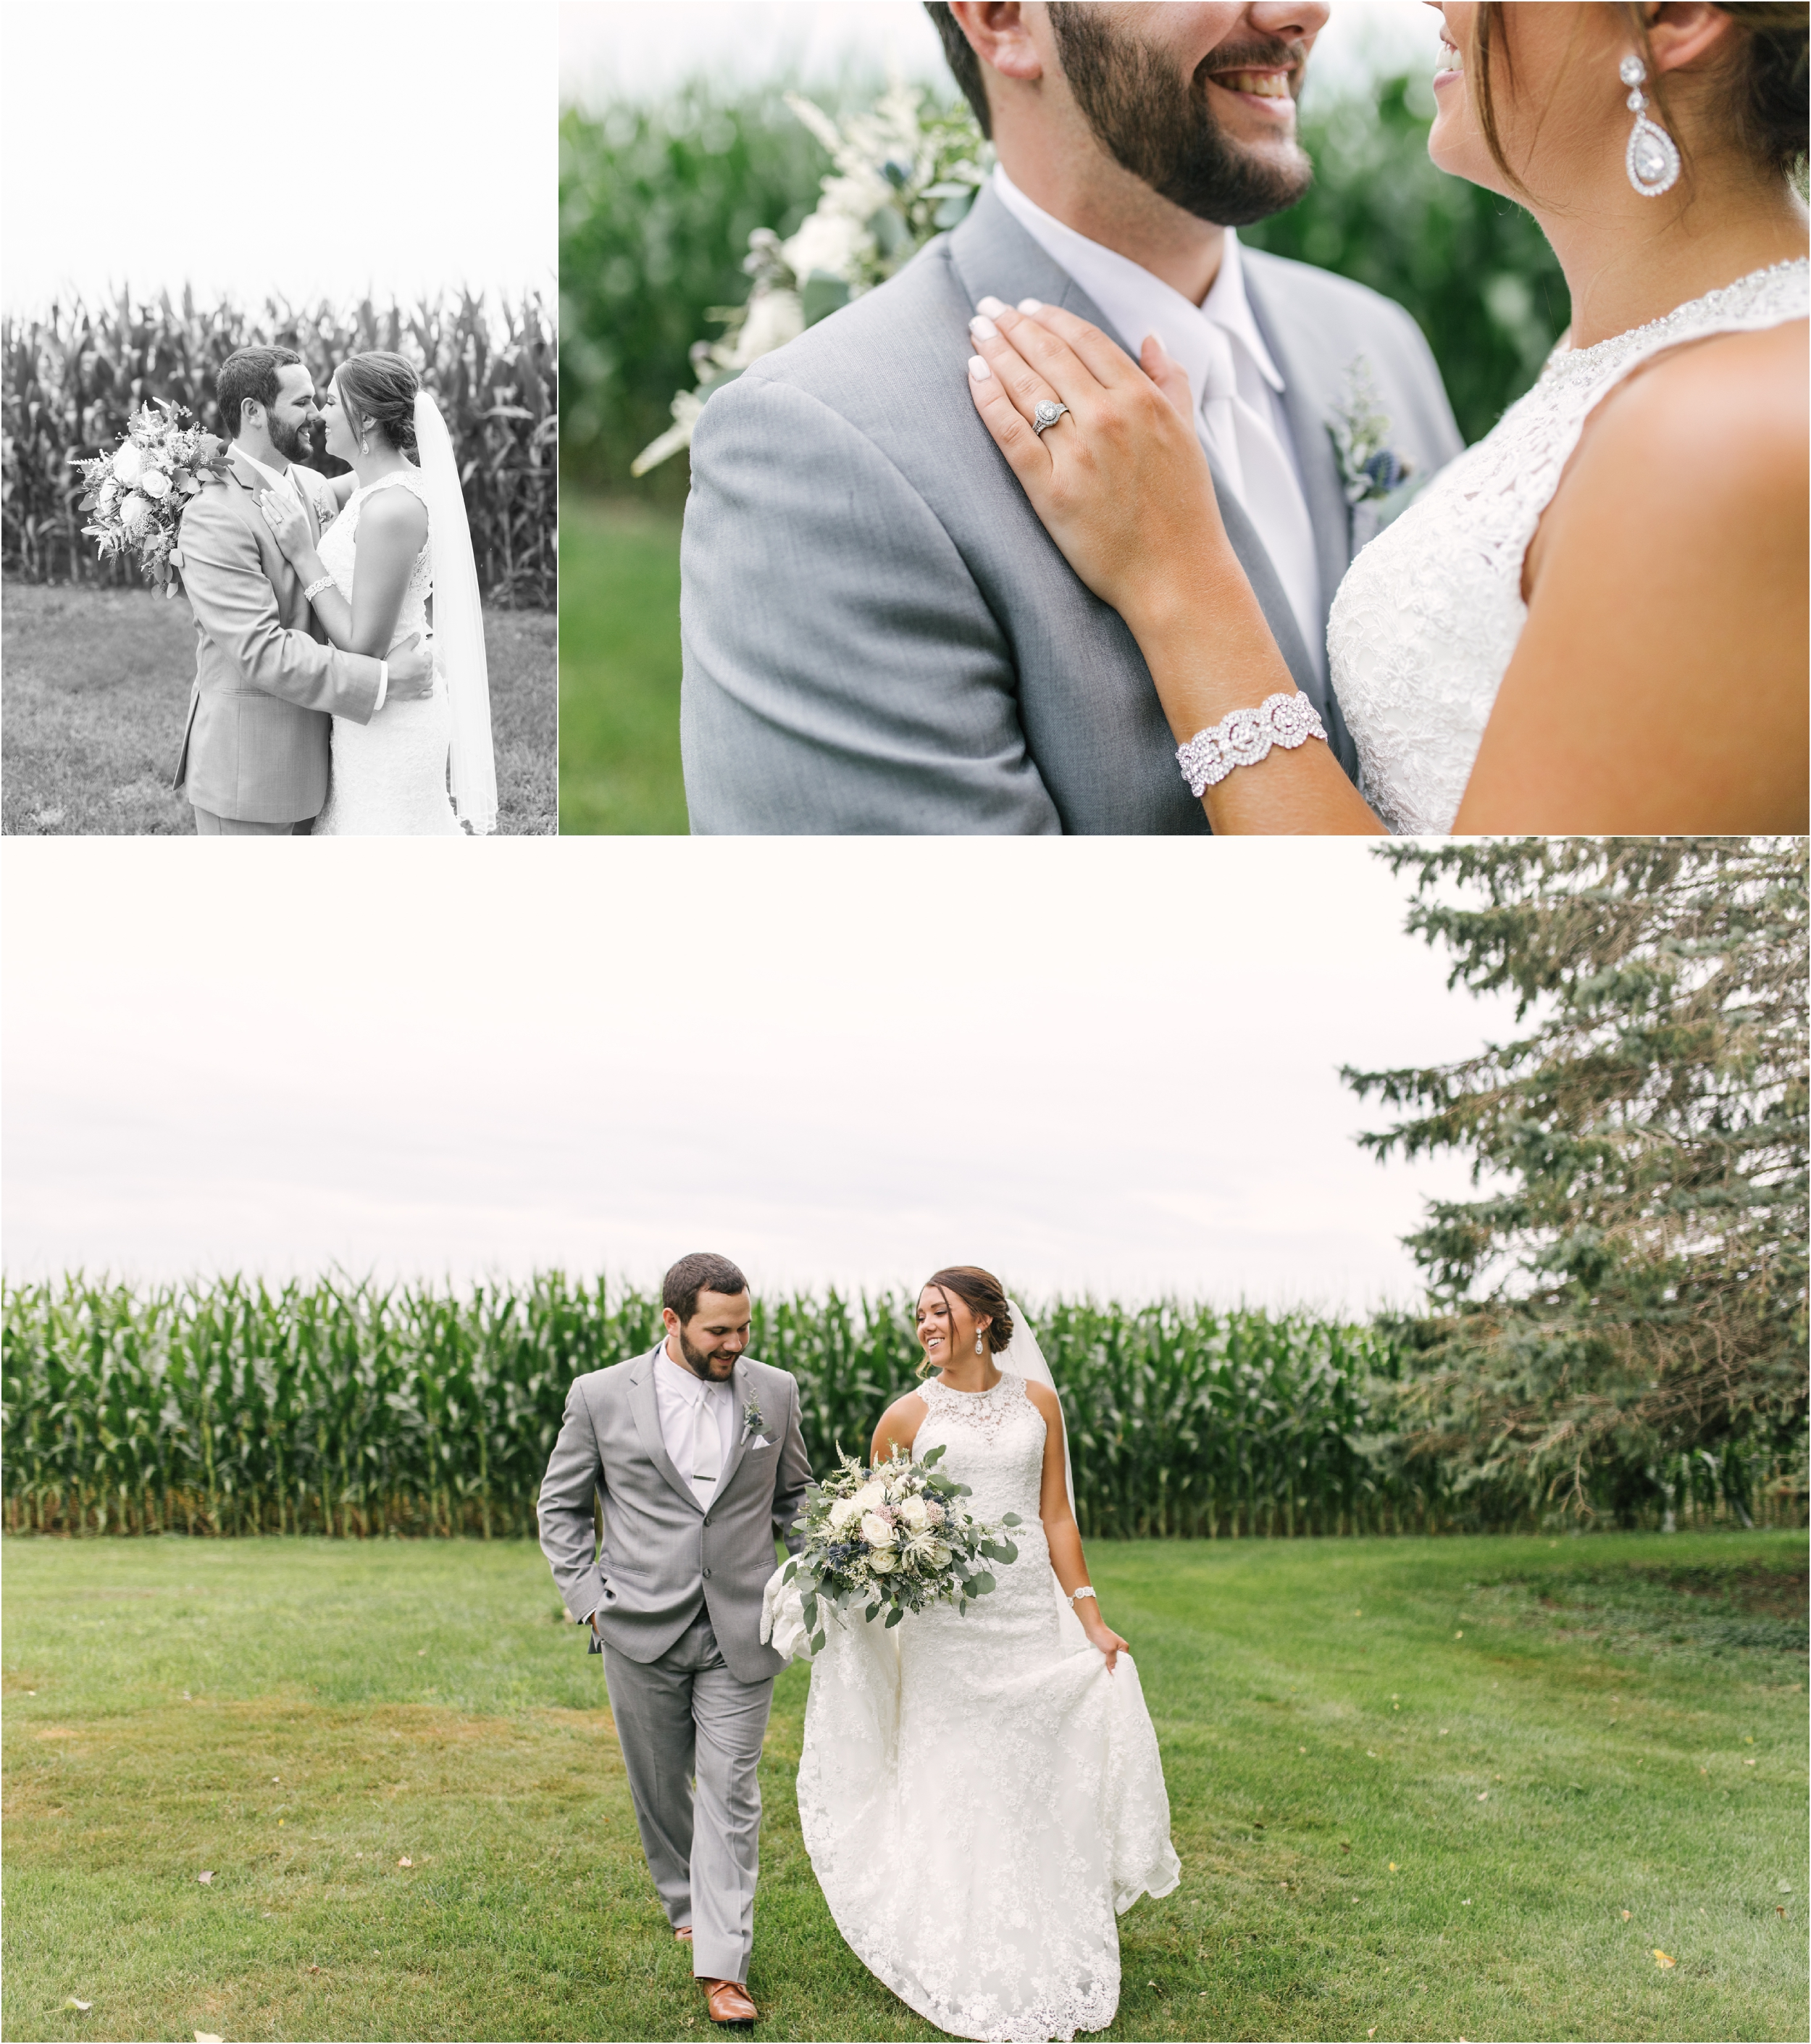 OakViewEvents_CountrysideWedding_MidwestWedding_0013.jpg